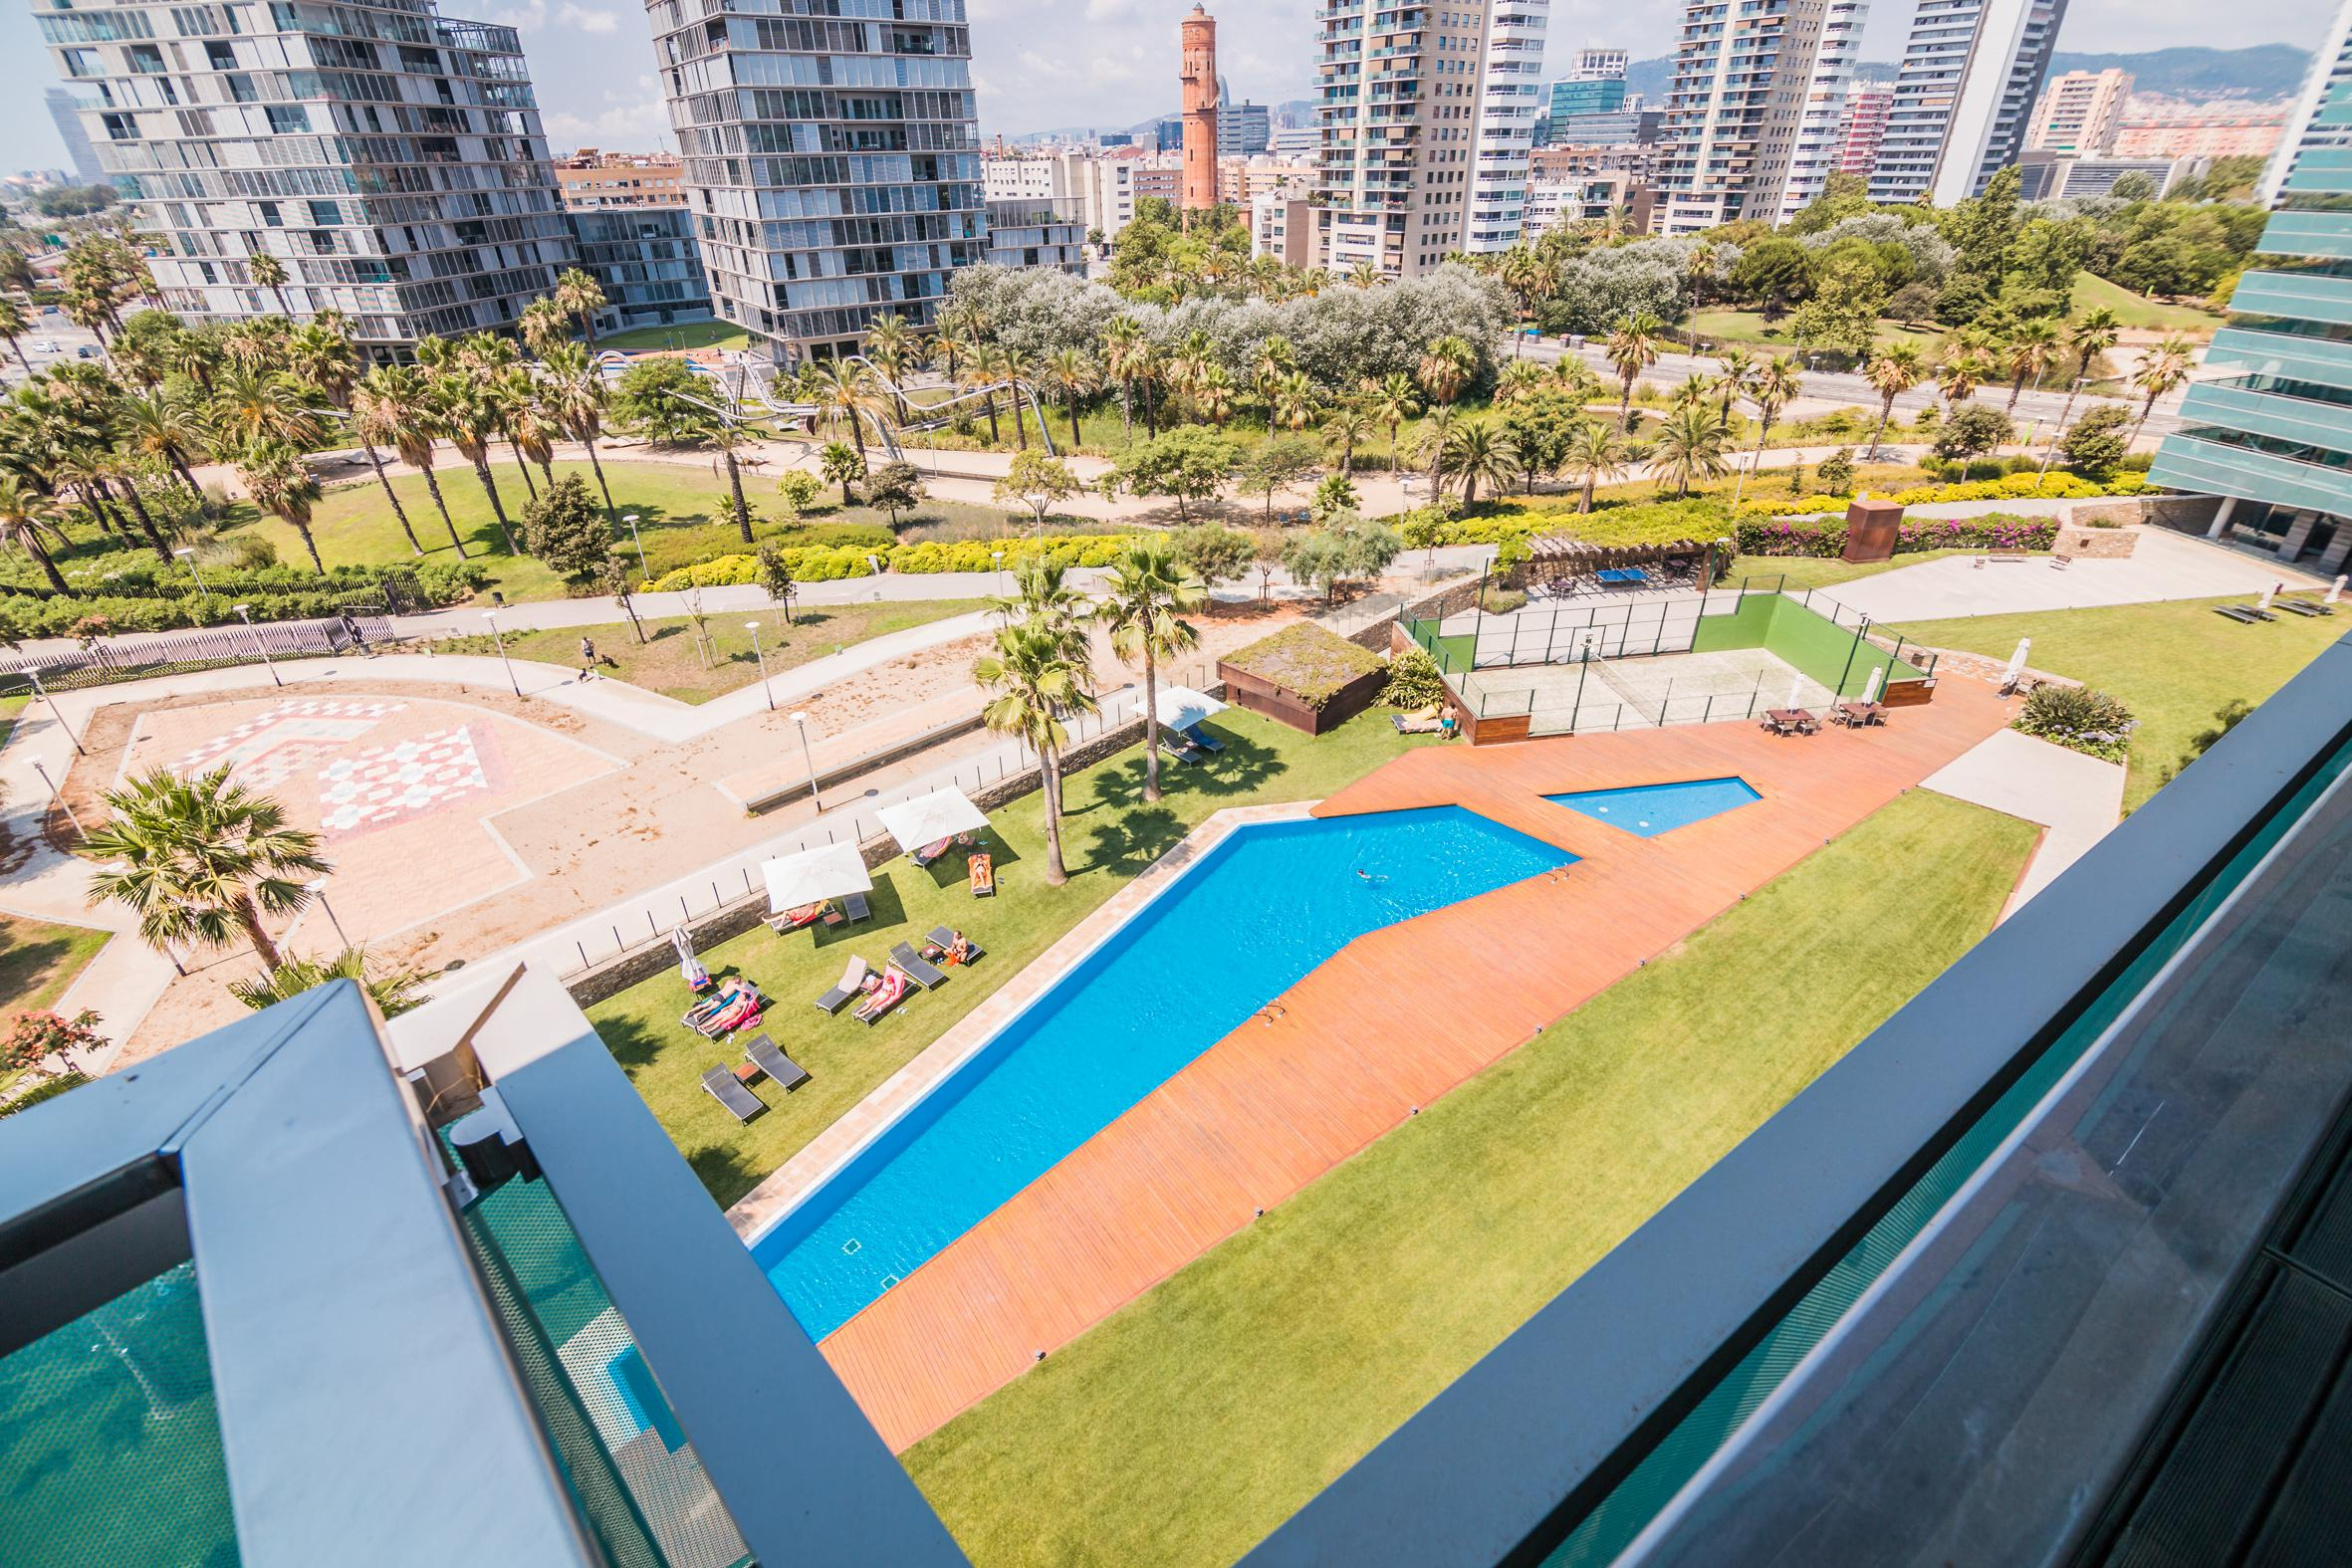 208233 Apartment for sale in Sant Martí, Diagonal Mar and Front Marítim PN 9